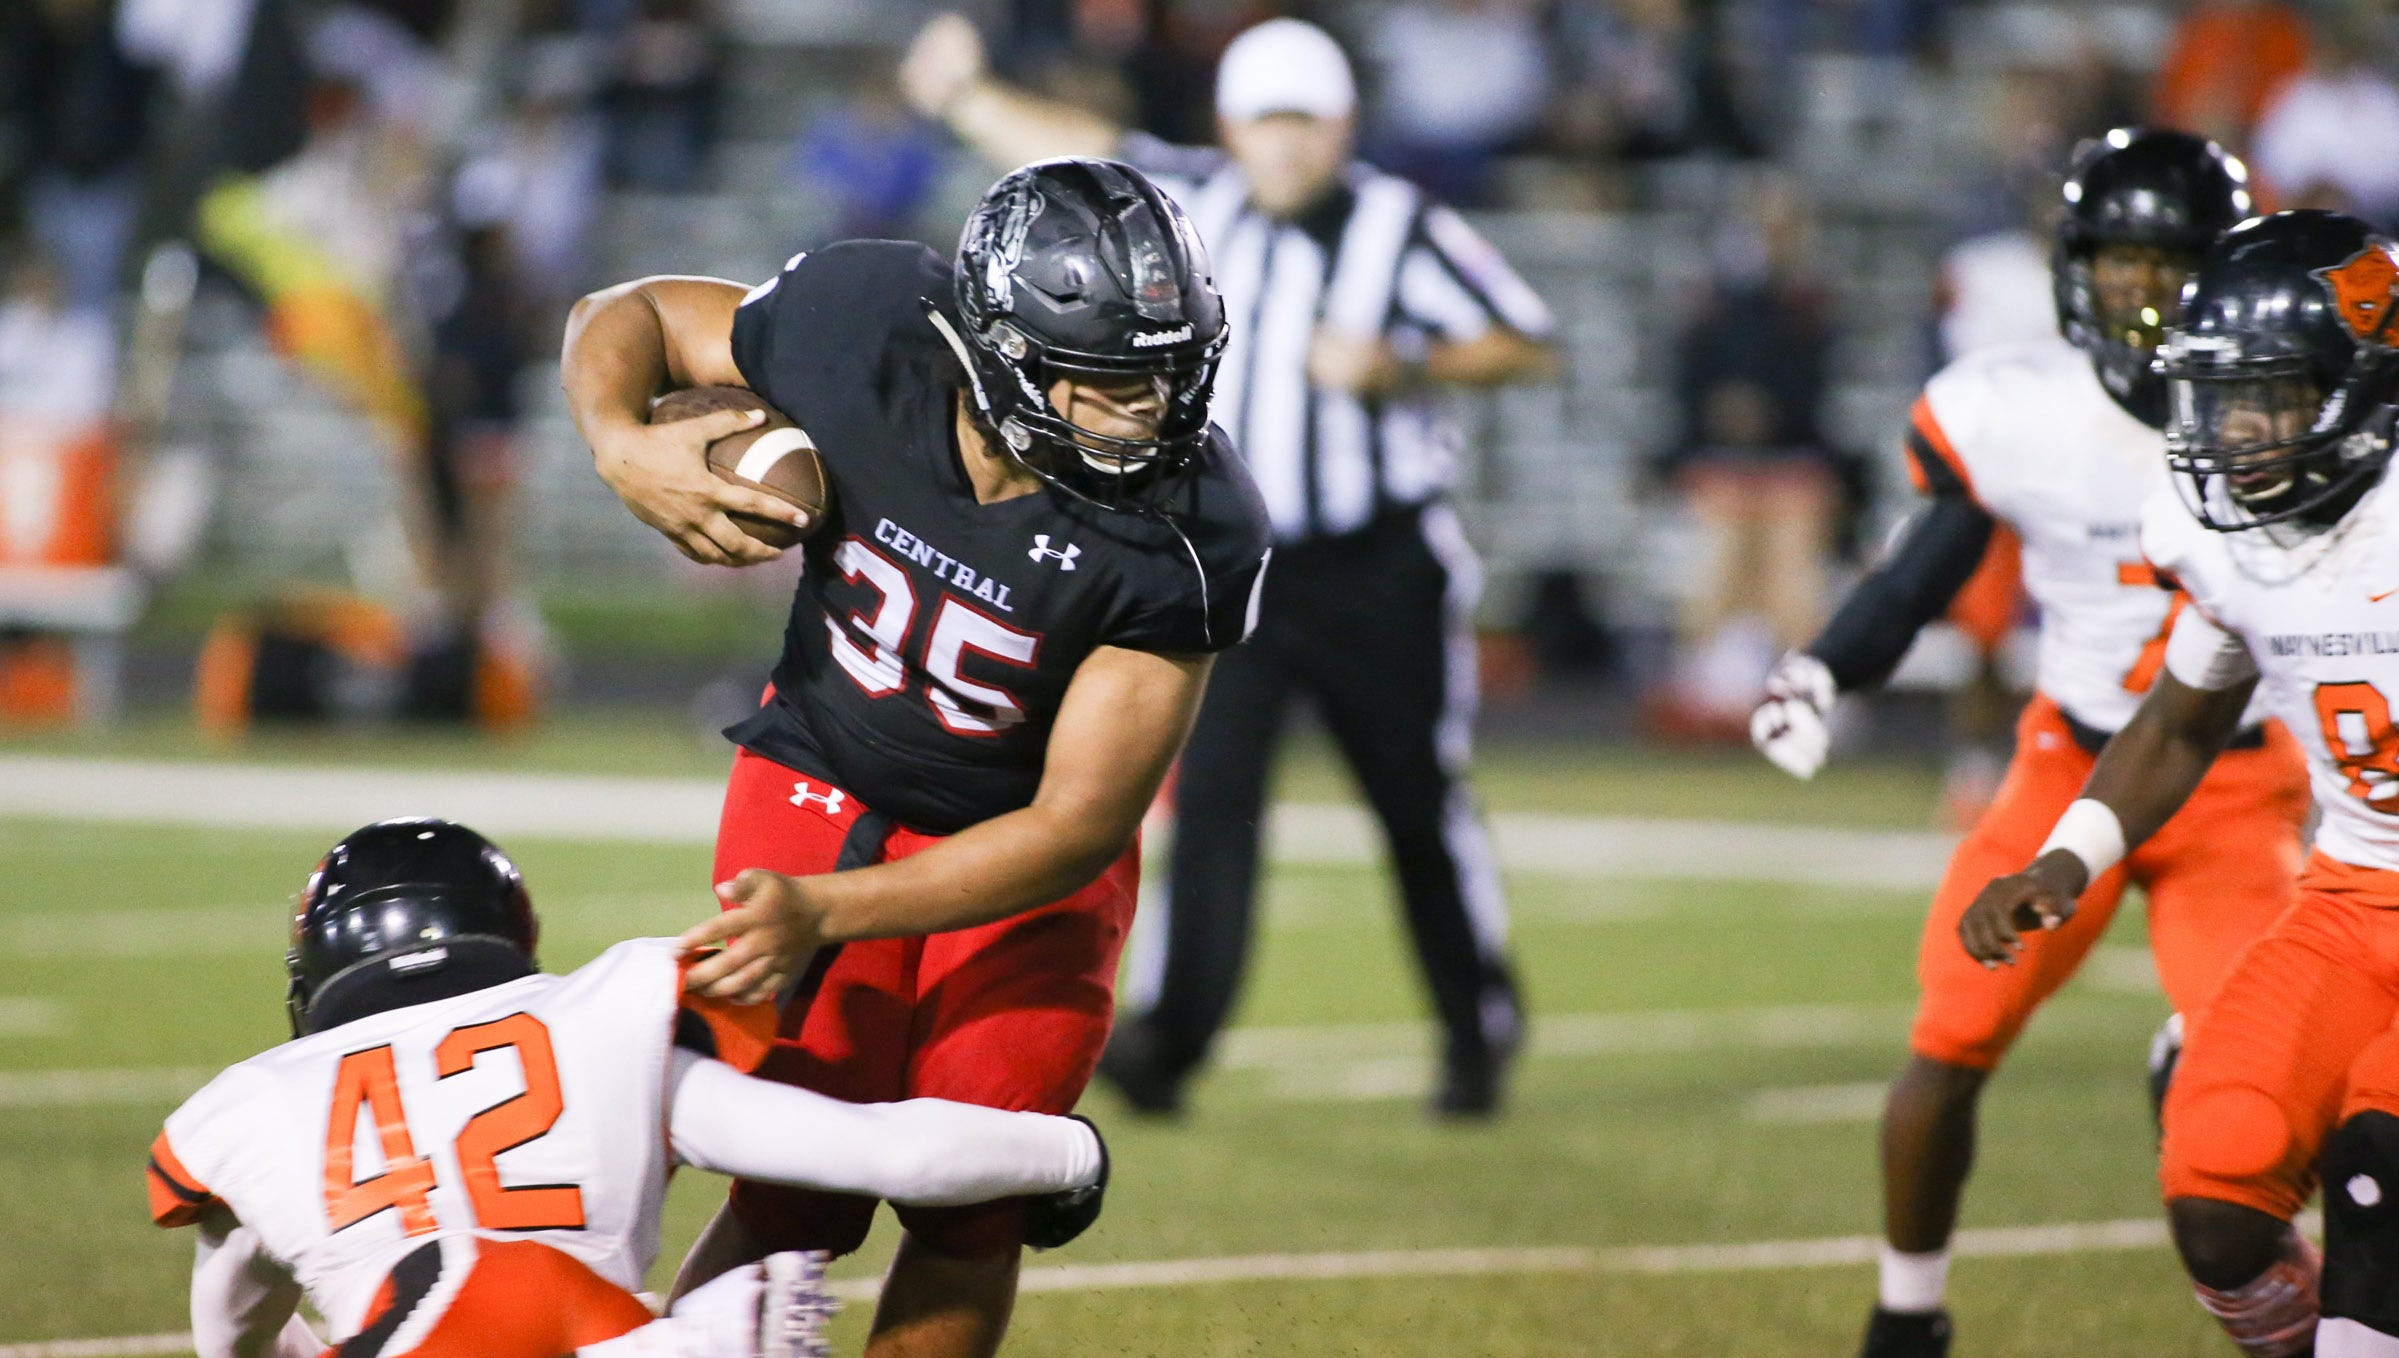 Central High School faced off with Waynesville at home Friday, September 21, 2018. (Jason Connel / for the News-Leader)